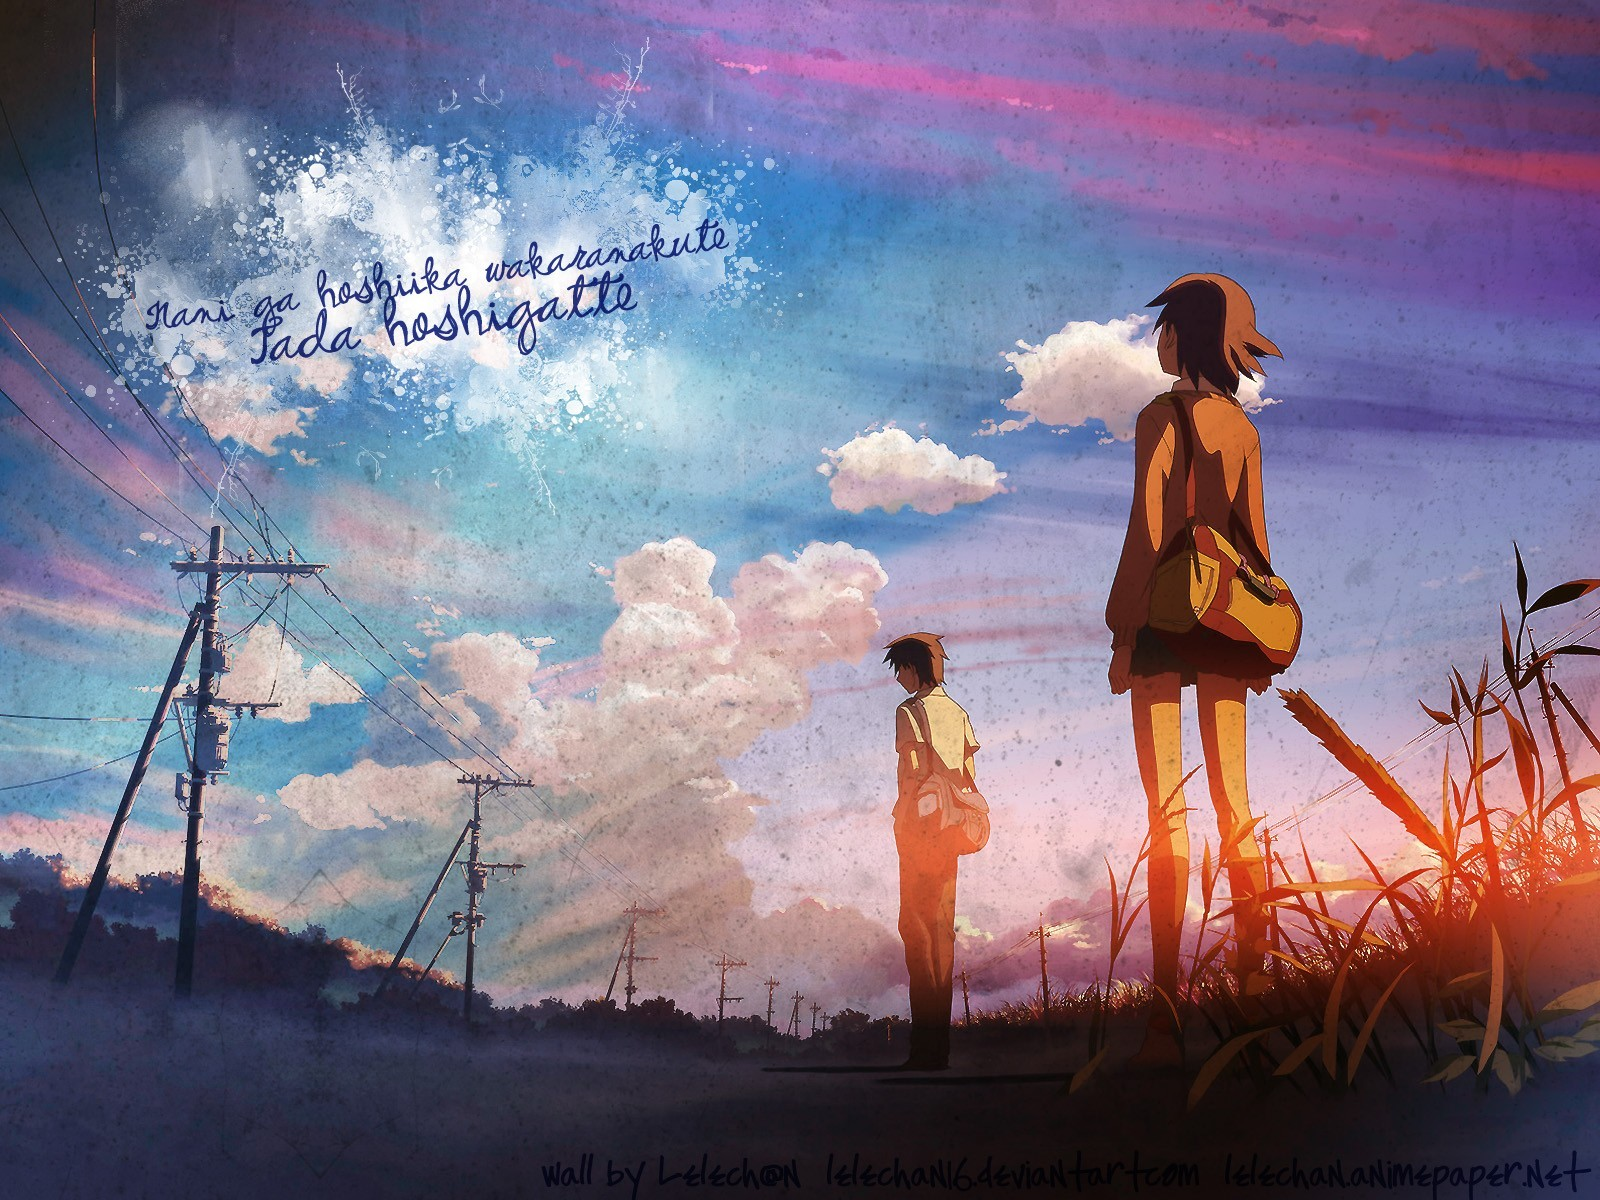 3840x1080 Hd Wallpapers Sad Quote 5 Centimeters Per Second Wallpapers Hd Desktop And